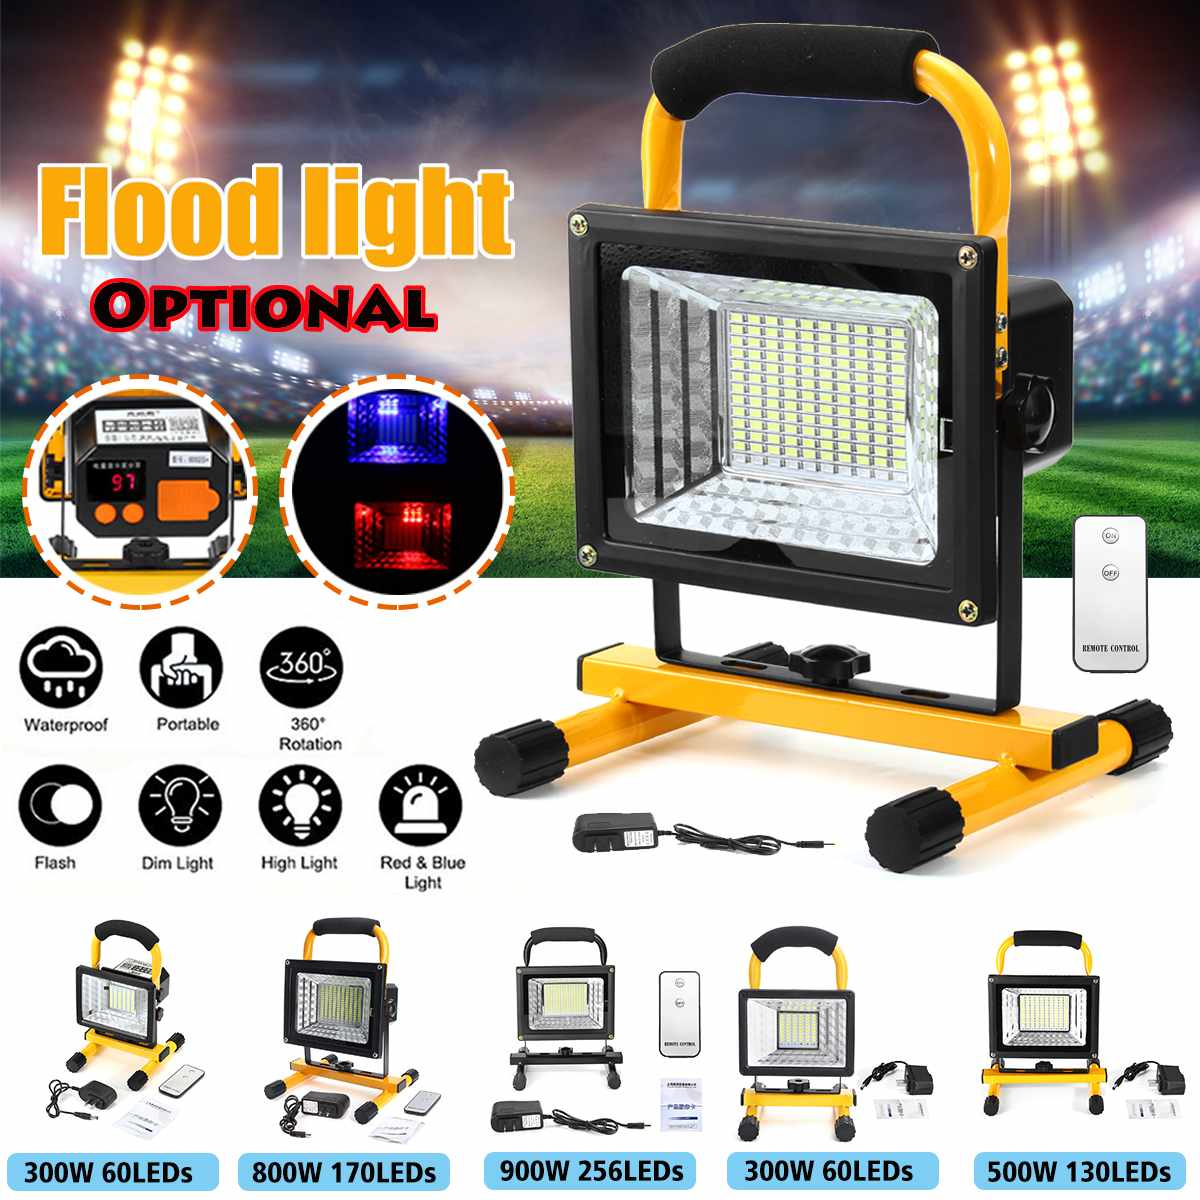 300-900W LED Portable Rechargeable Floodlight Waterproof Spotlight Battery Powered Searchlight Outdoor Work Lamp Camping Hot